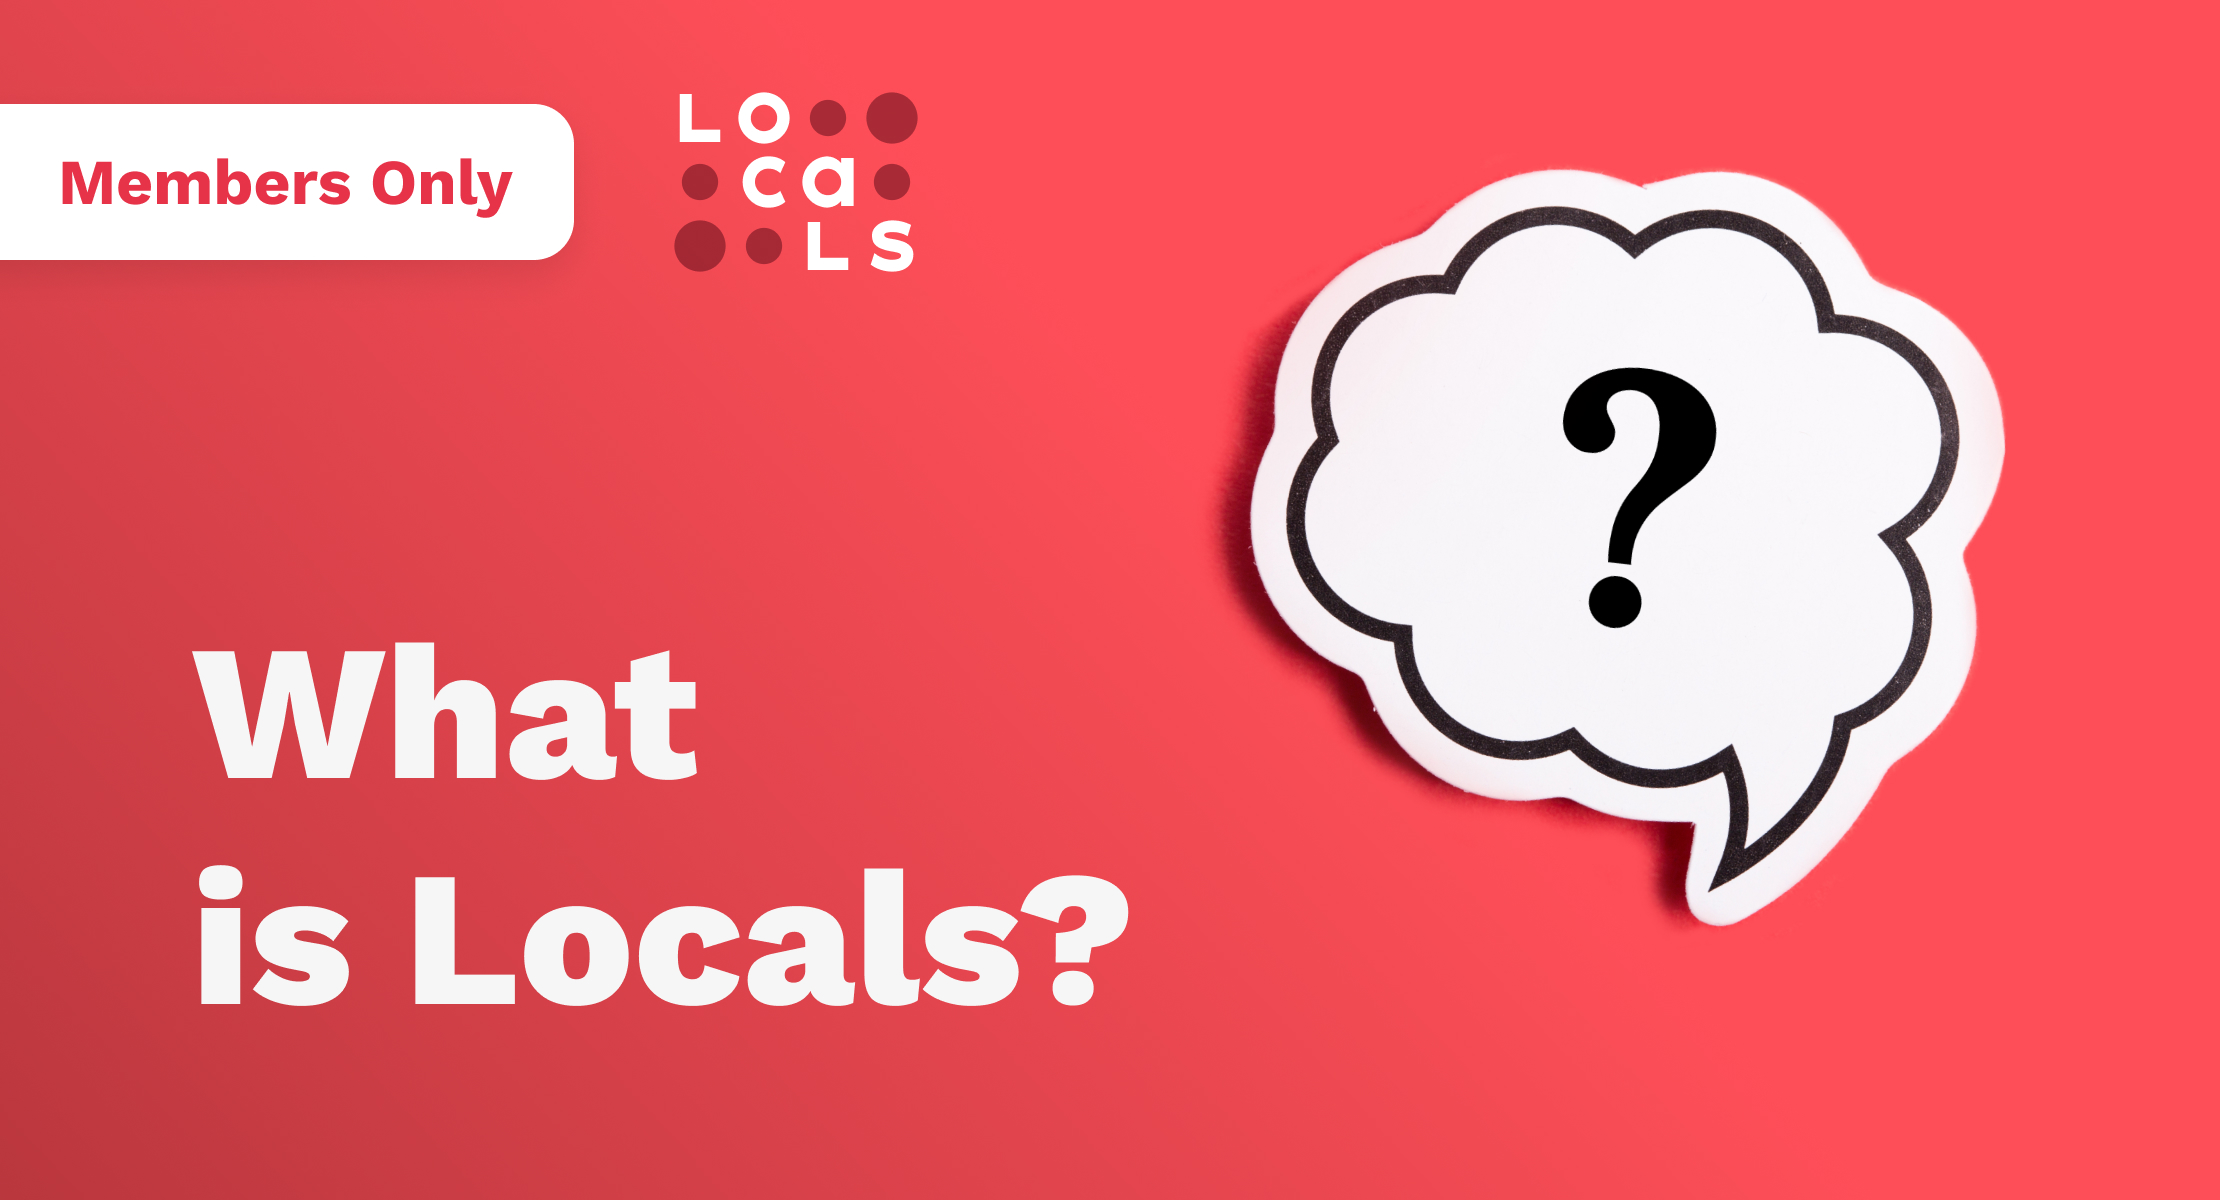 Members Only: What is Locals?